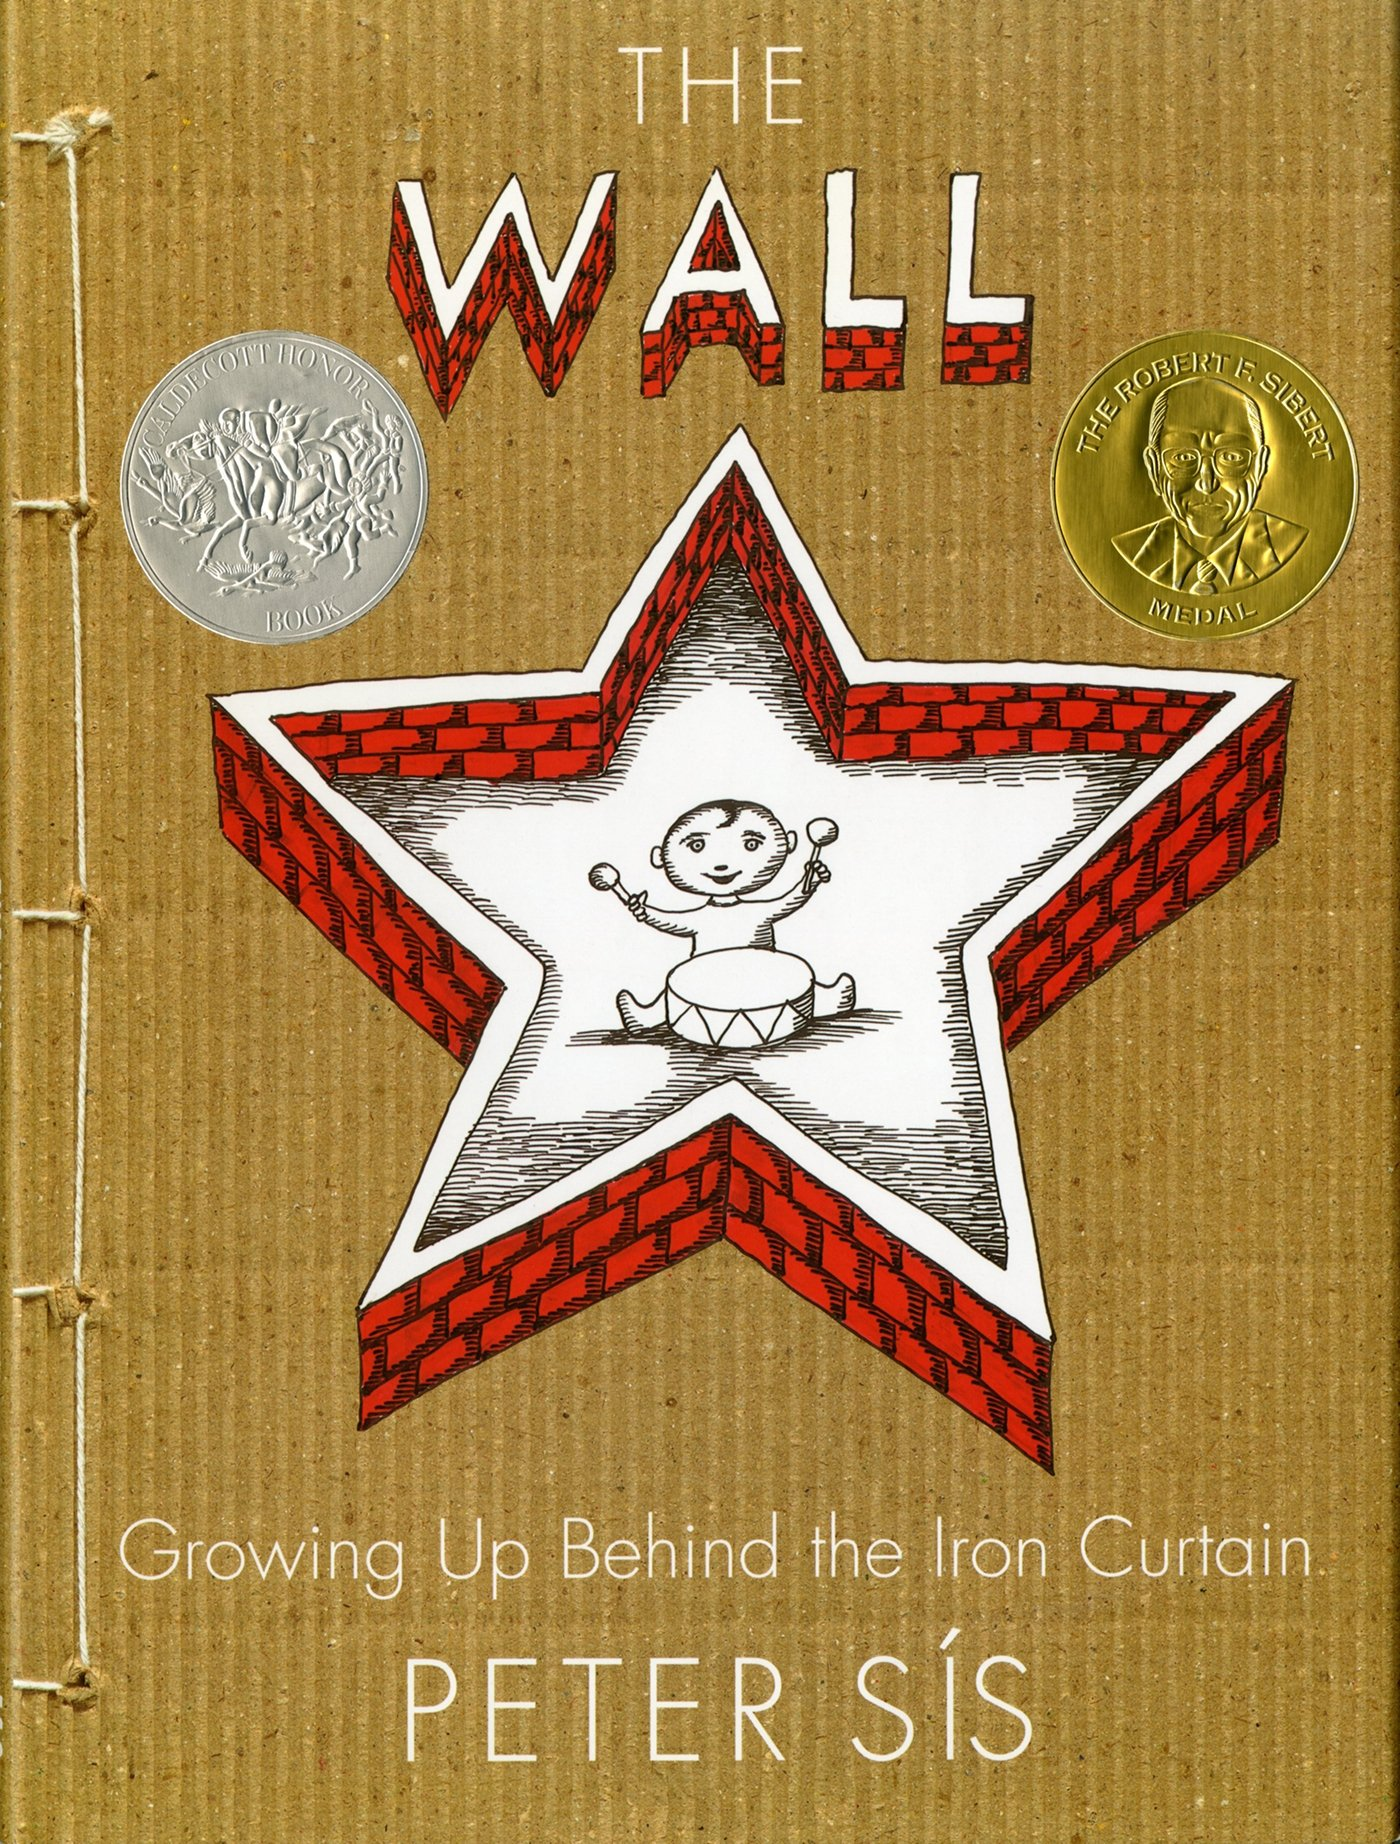 the wall growing up behind the iron curtain caldecott honor book the wall growing up behind the iron curtain caldecott honor book peter sis 9780374347017 amazon com books